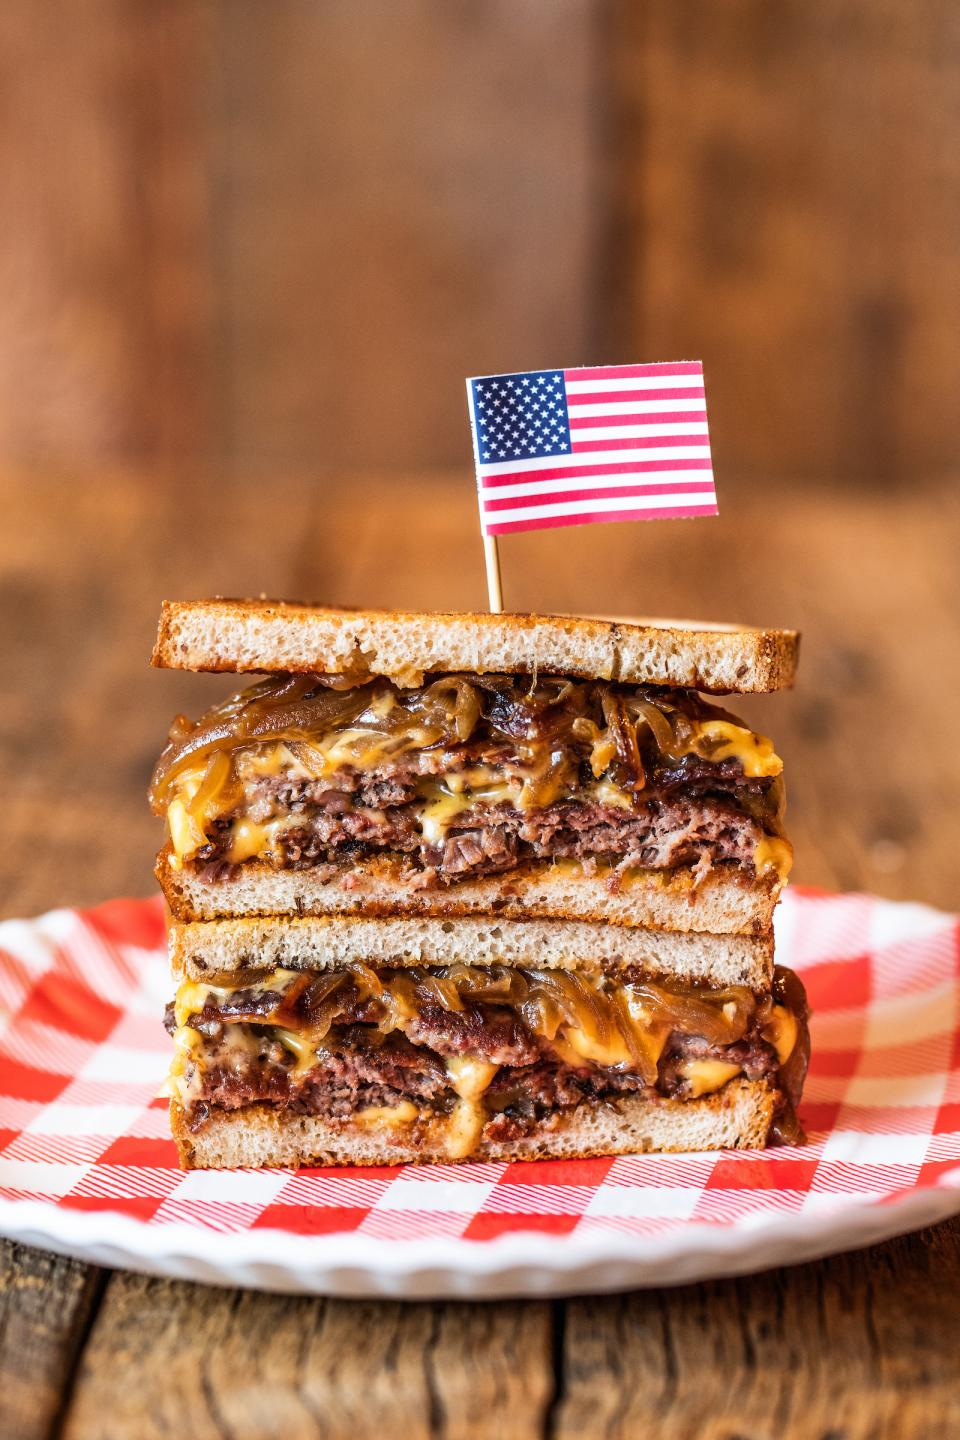 Bub City Patty Melt